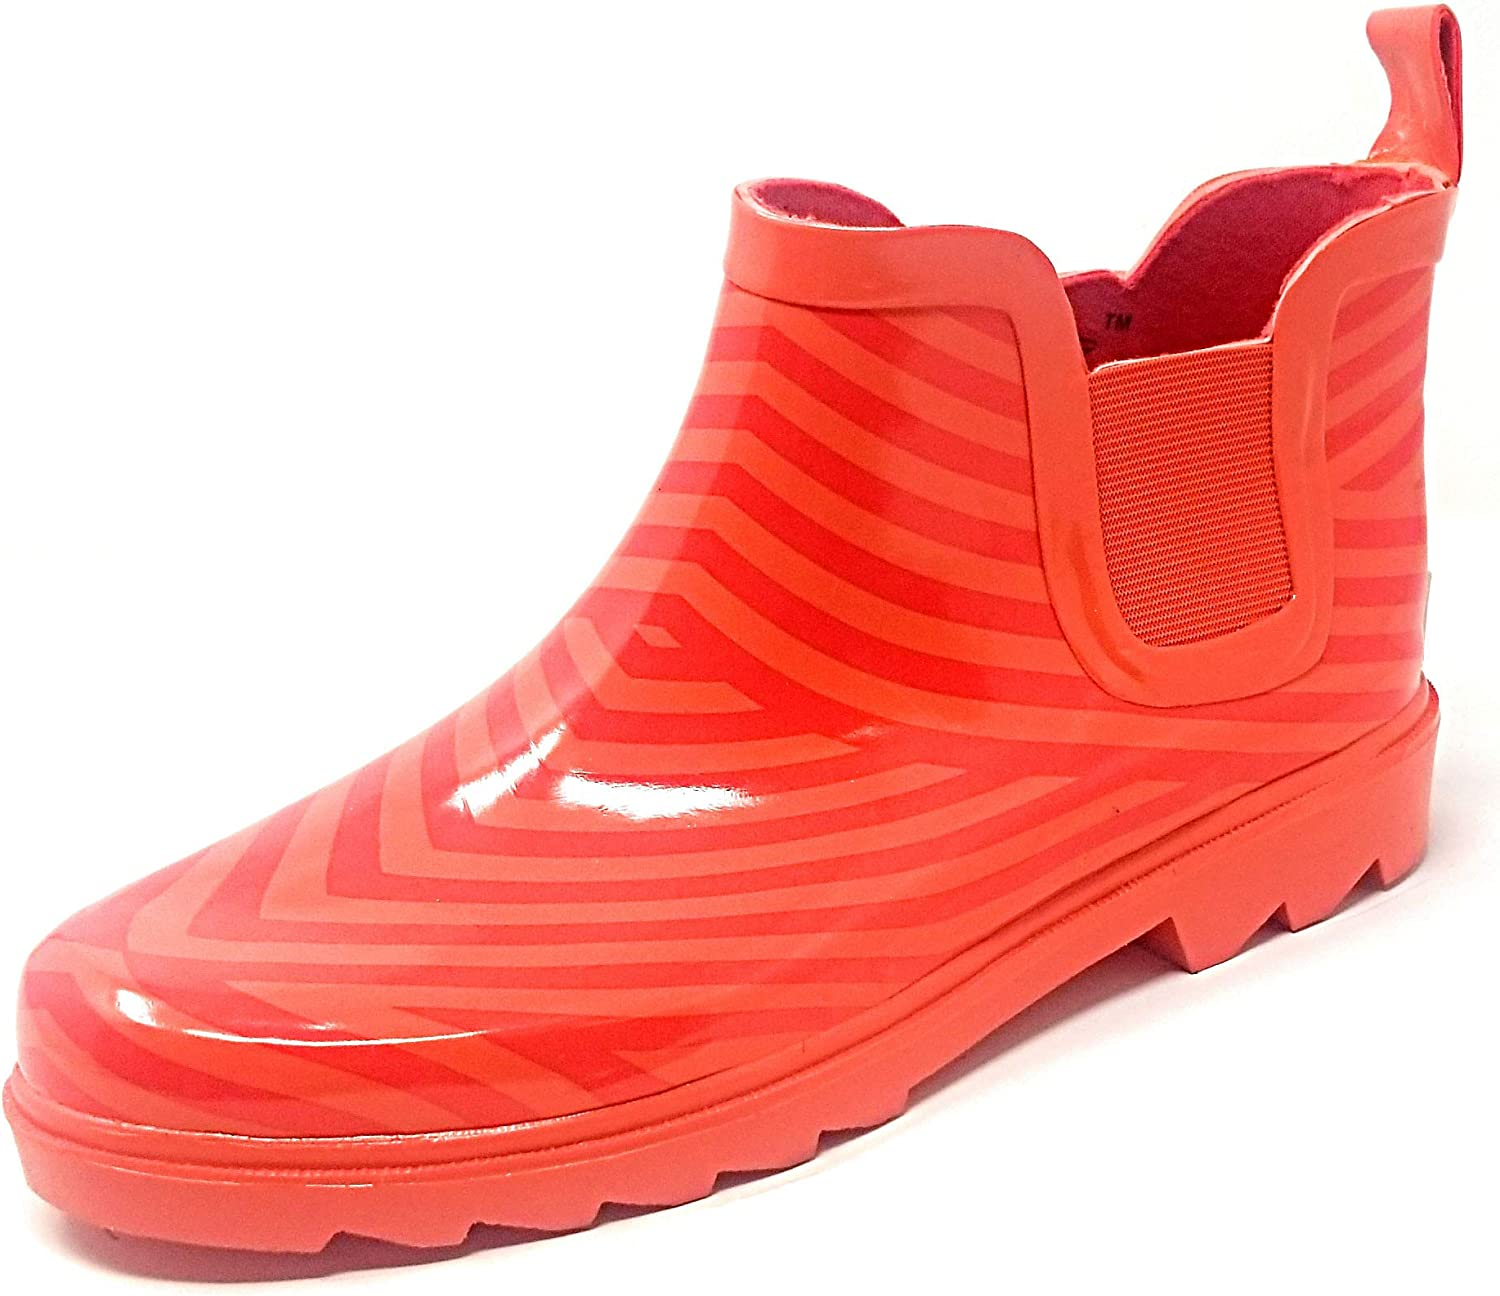 Forever Young Women Rubber Rain Boots - 5